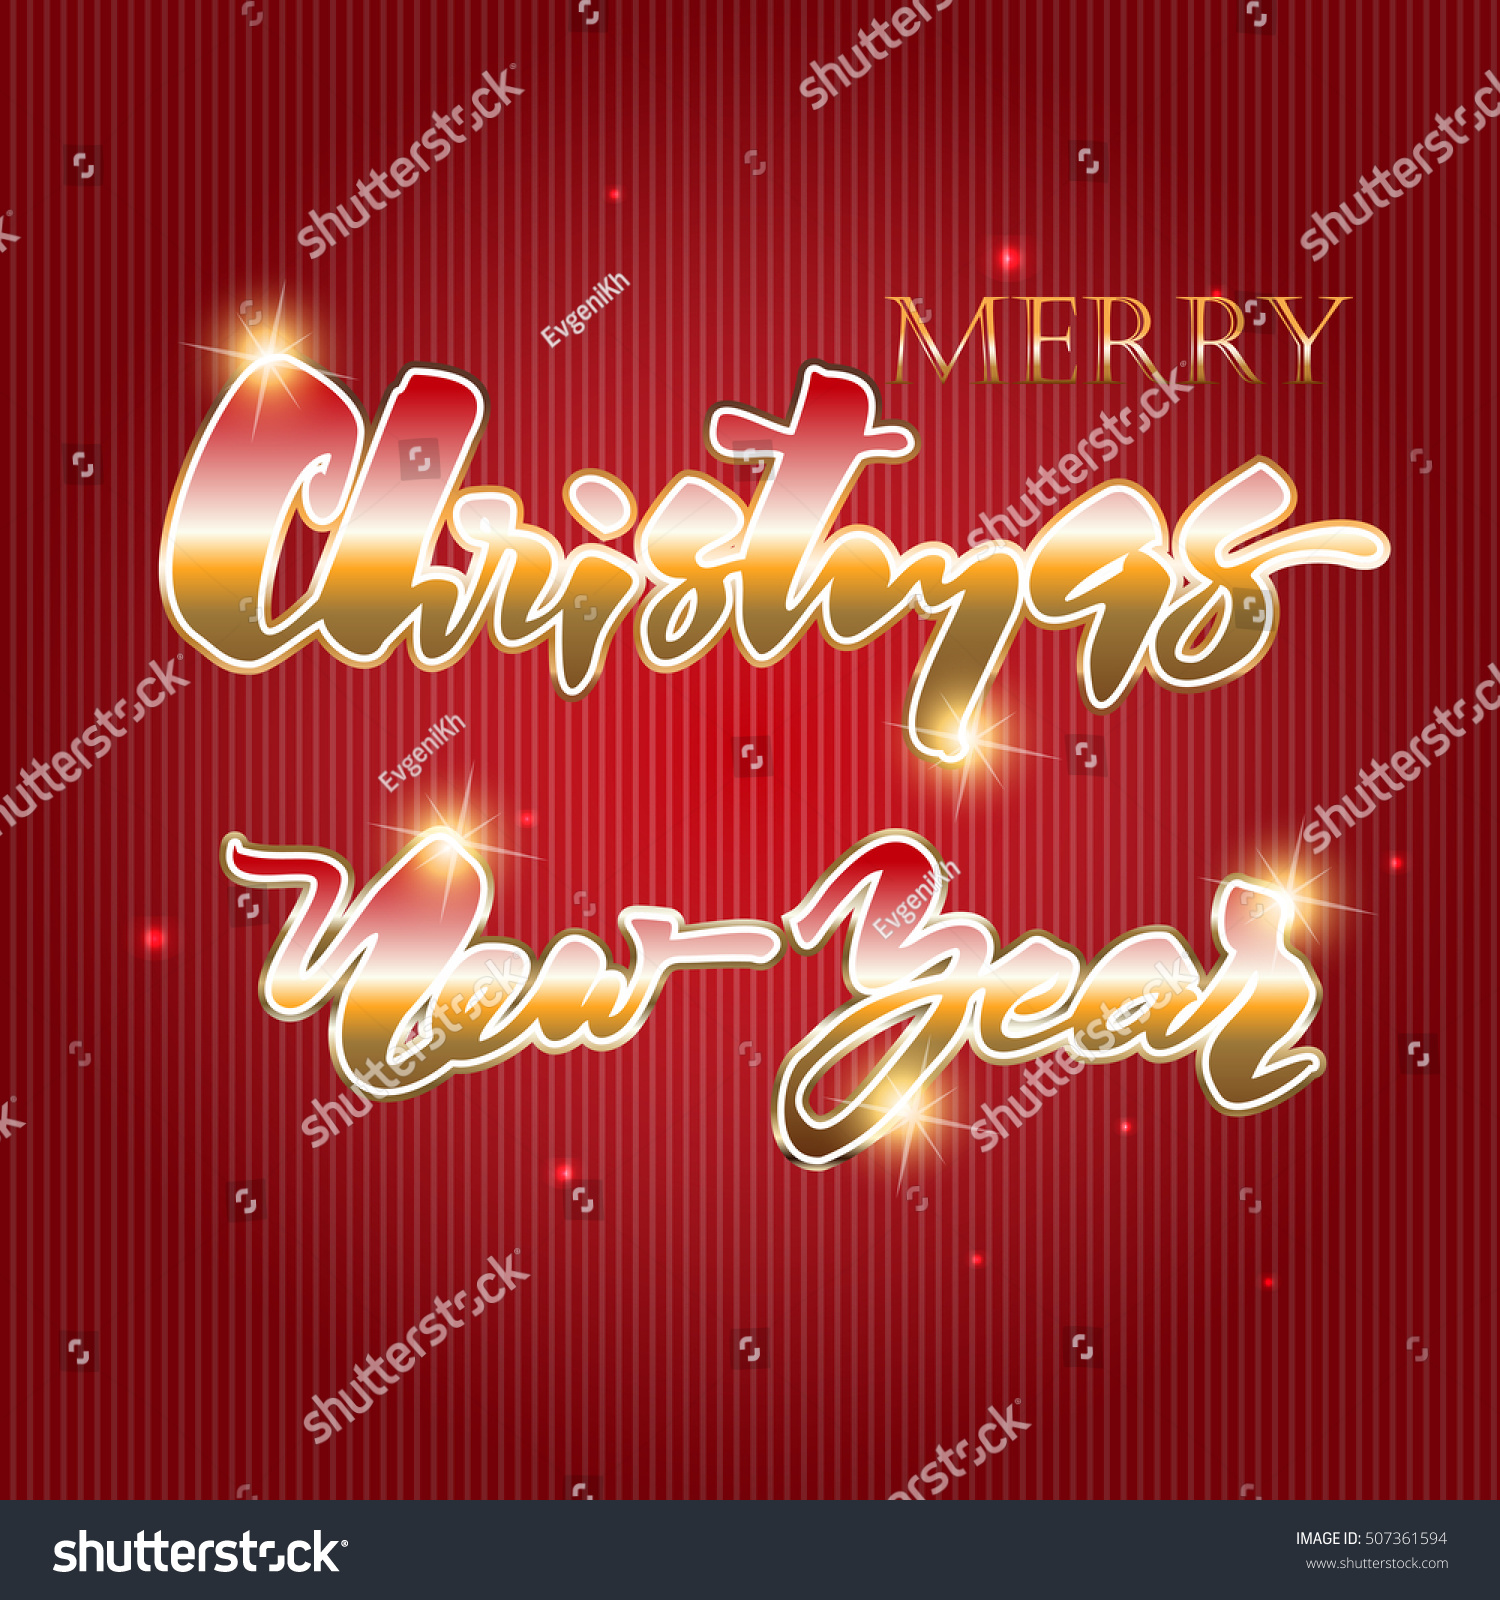 Merry Christmas Vector Text Xmas Greeting Stock Vector (Royalty Free ...